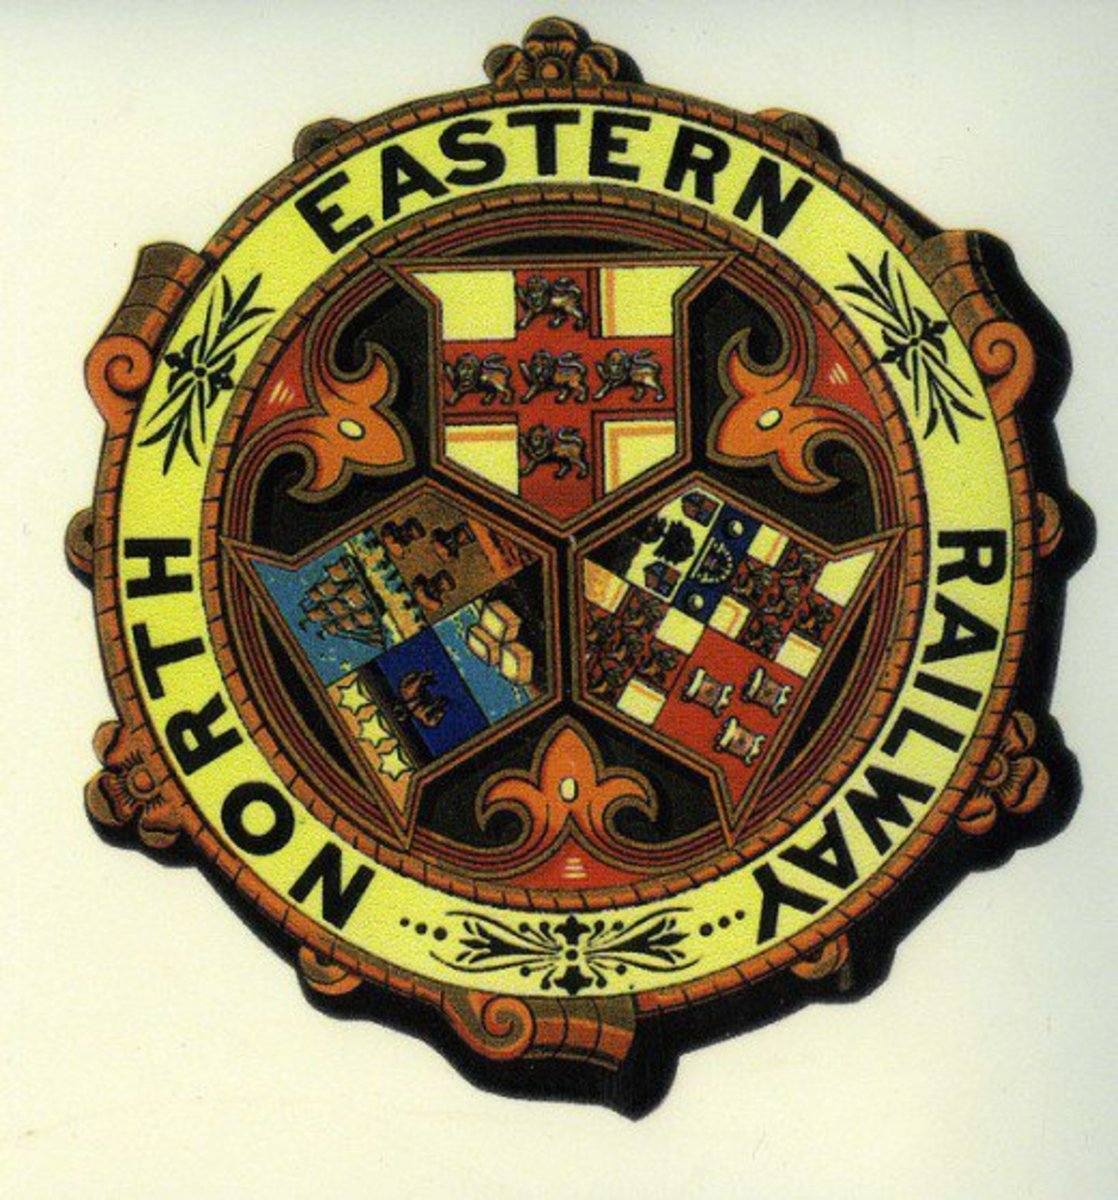 North Eastern Railway arms shows the cities - from the top, clockwise - of York, Newcastle-upon-Tyne and Leeds